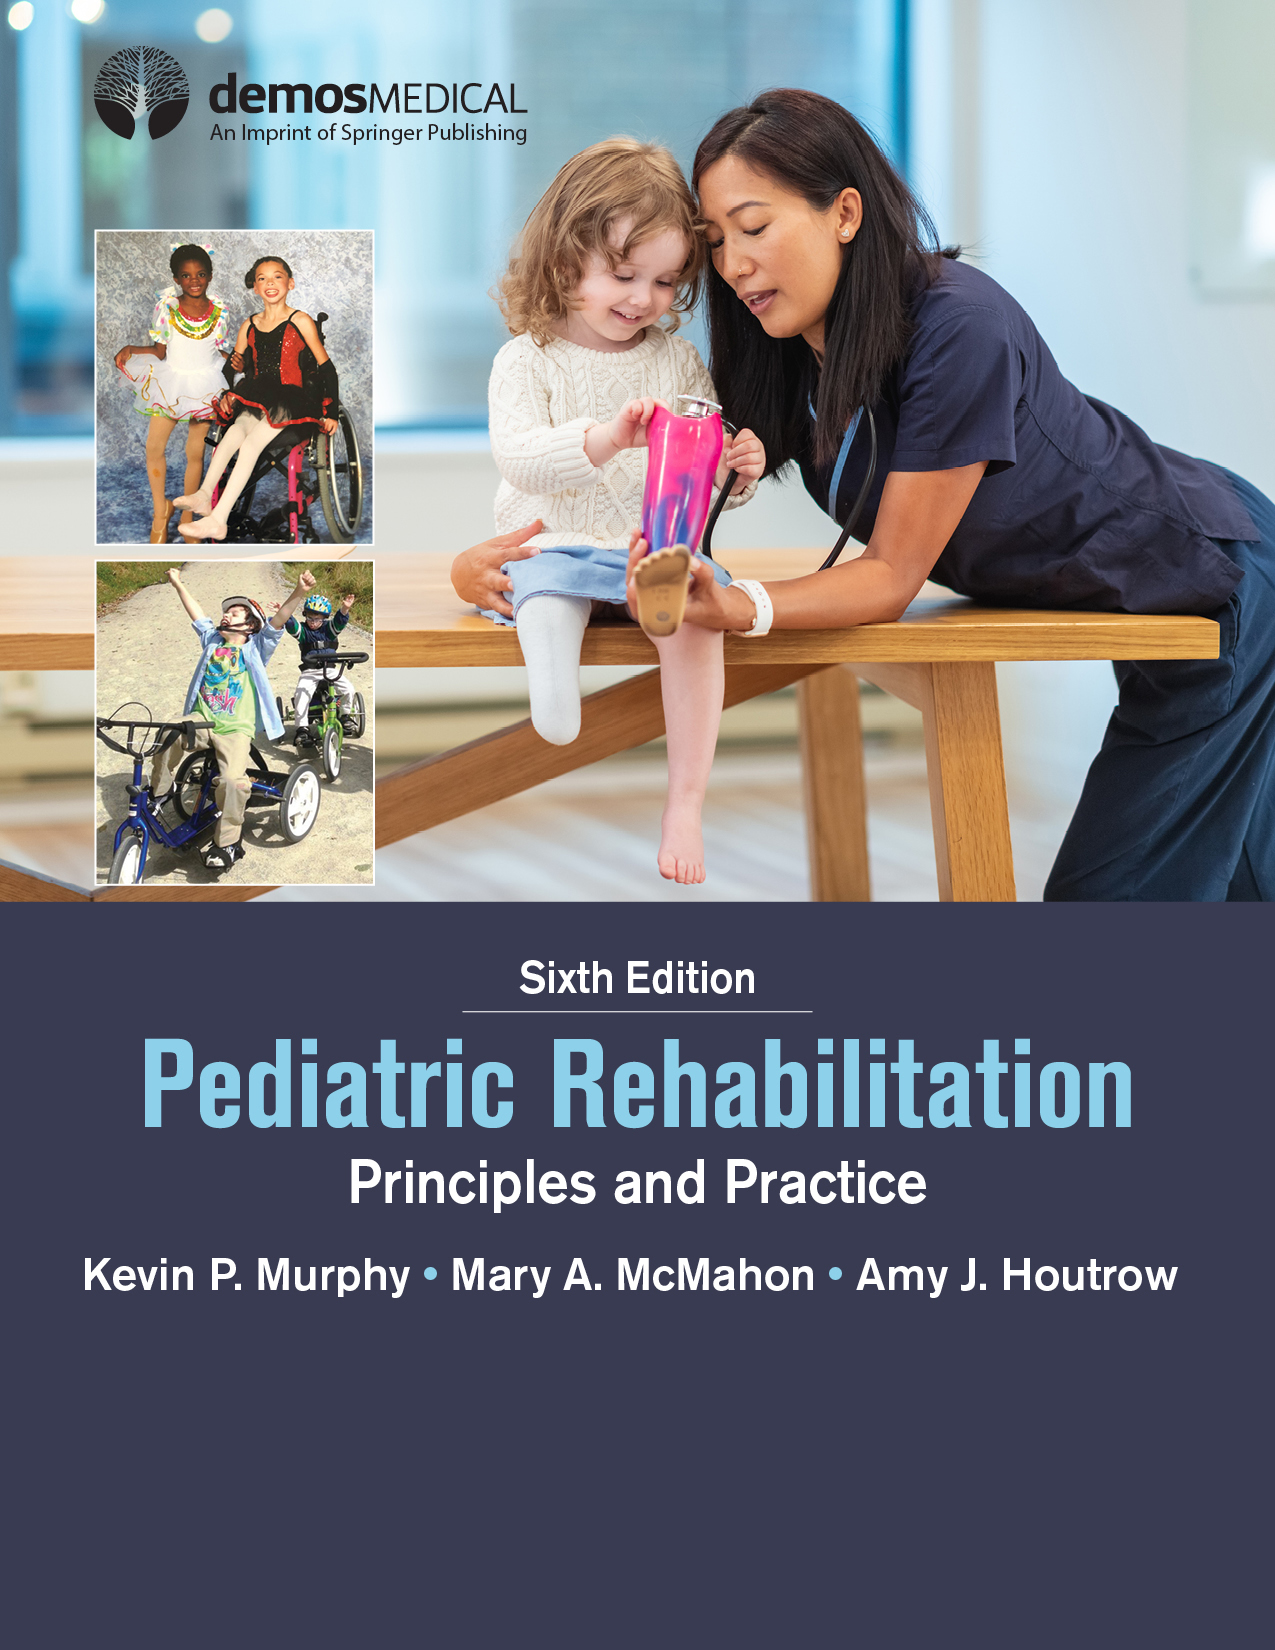 Pediatric Rehabilitation